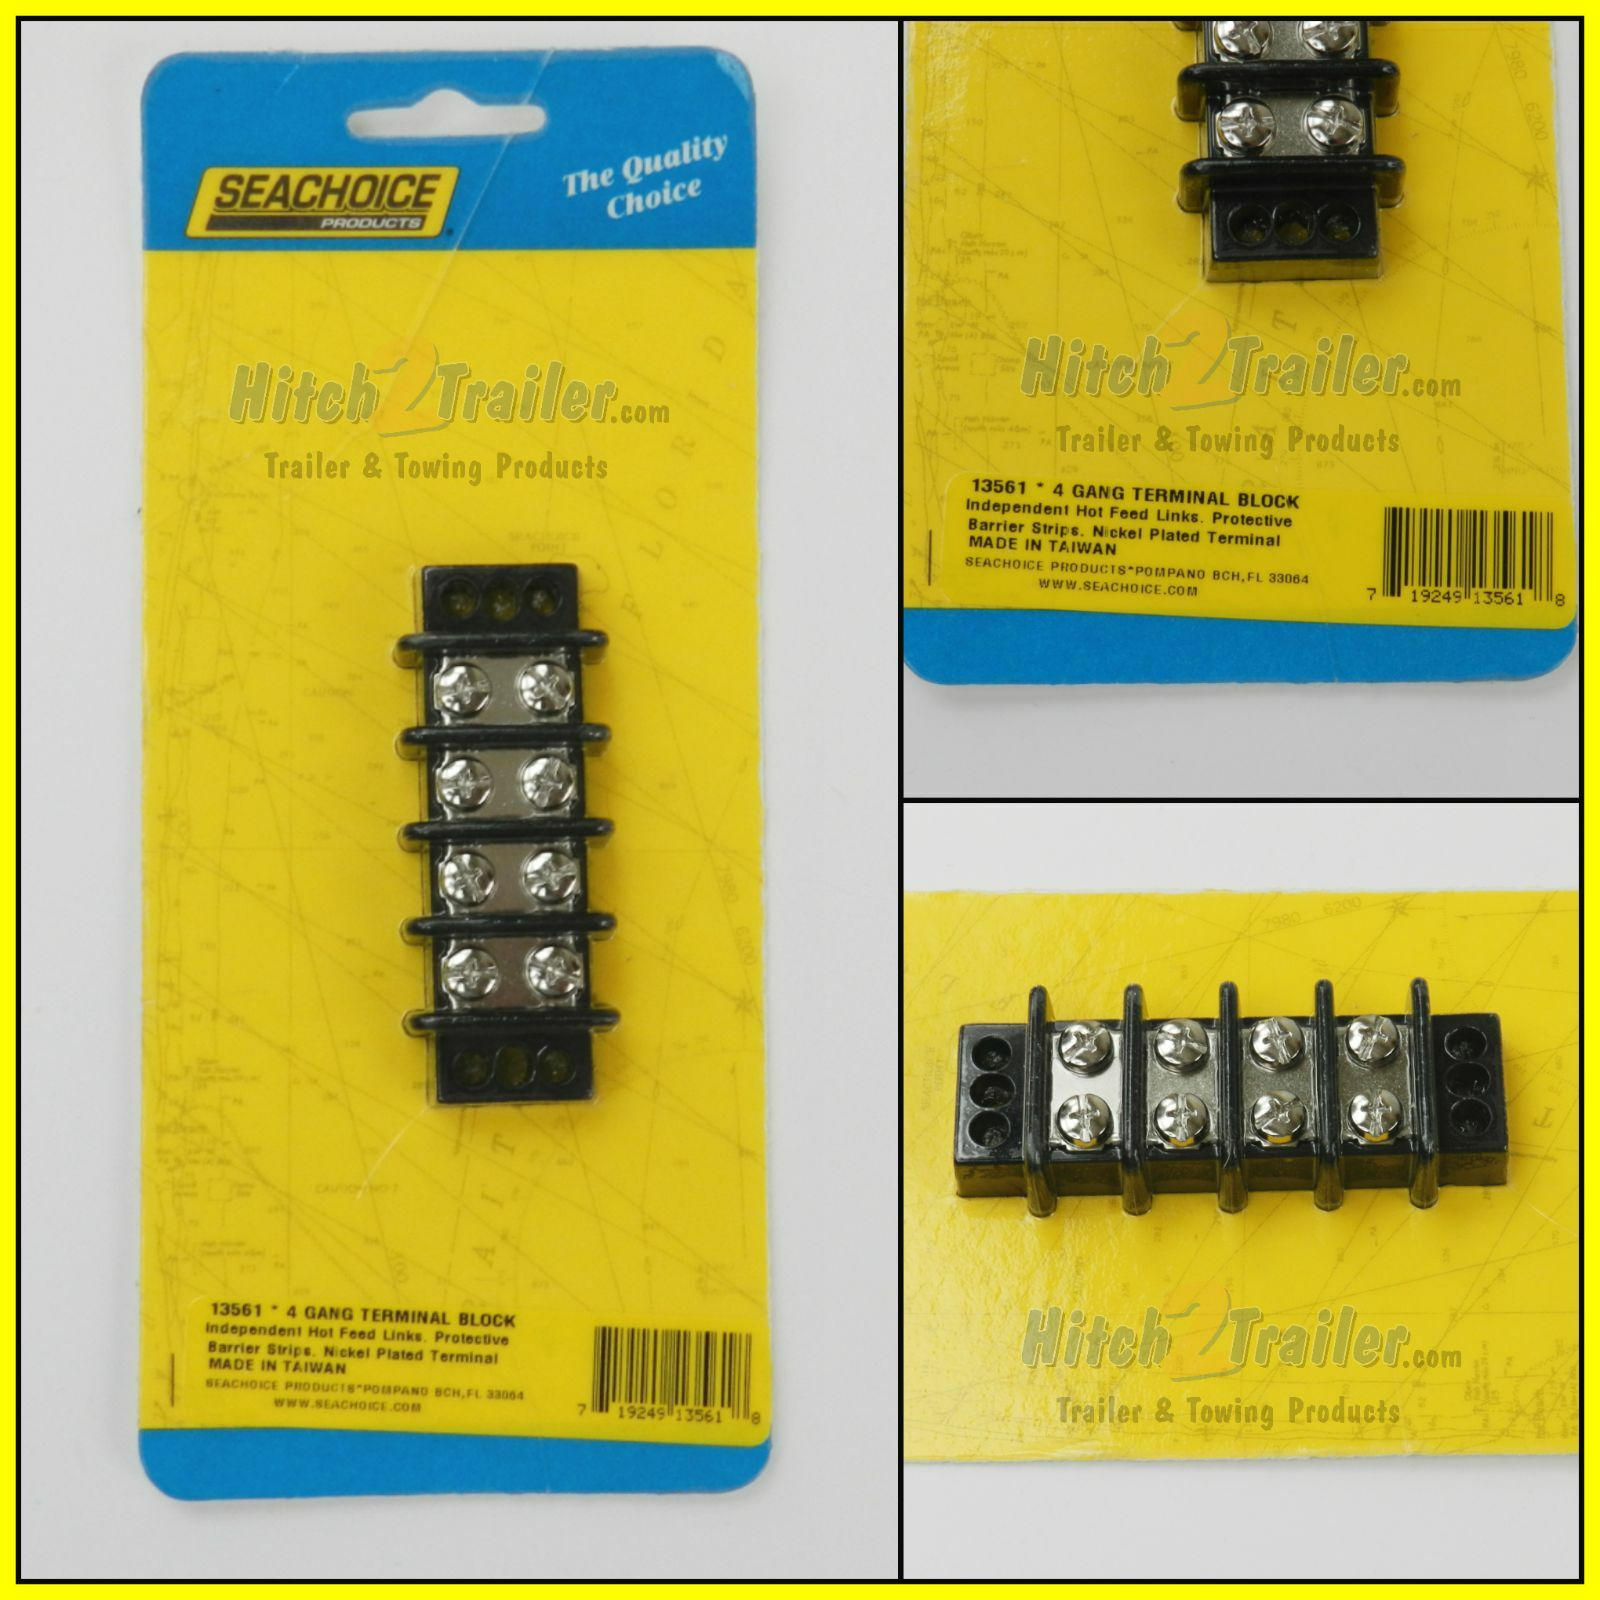 Seachoice Wiring Diagram Library Block For Boat Marine 4 Gang Nickel Electric Screw Terminal Junction Switch Panel From Fuse